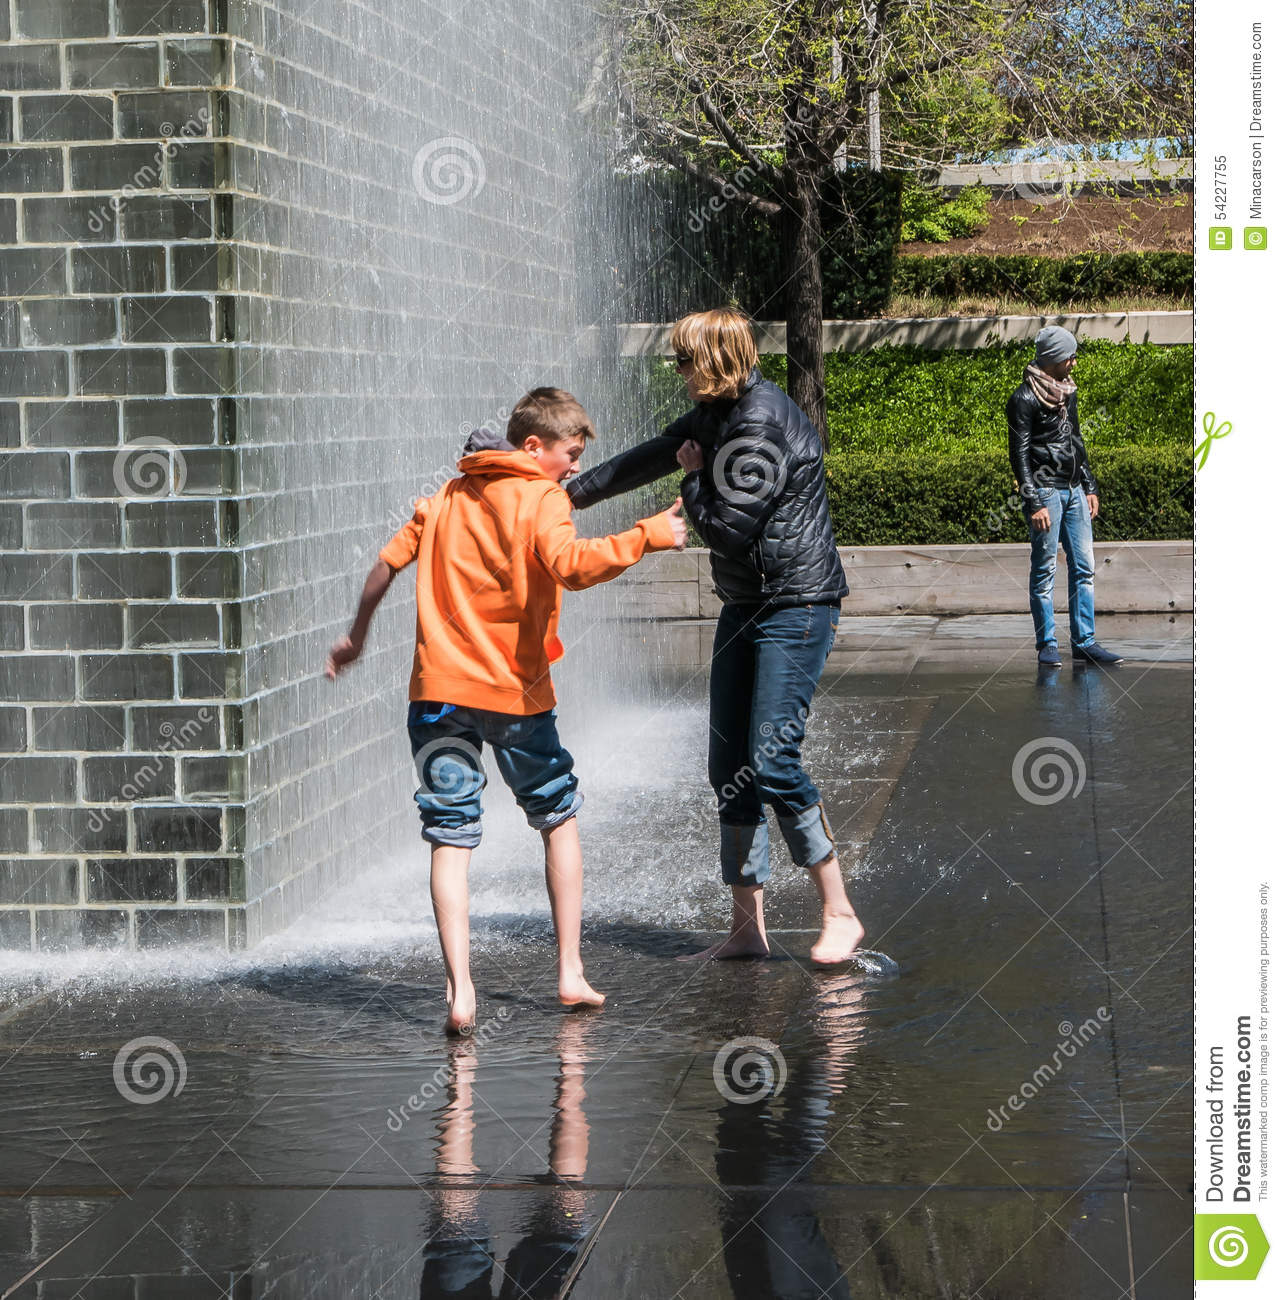 https://thumbs.dreamstime.com/z/mother-son-play-barefoot-crown-fountain-chicago-spray-millennium-park-54227755.jpg